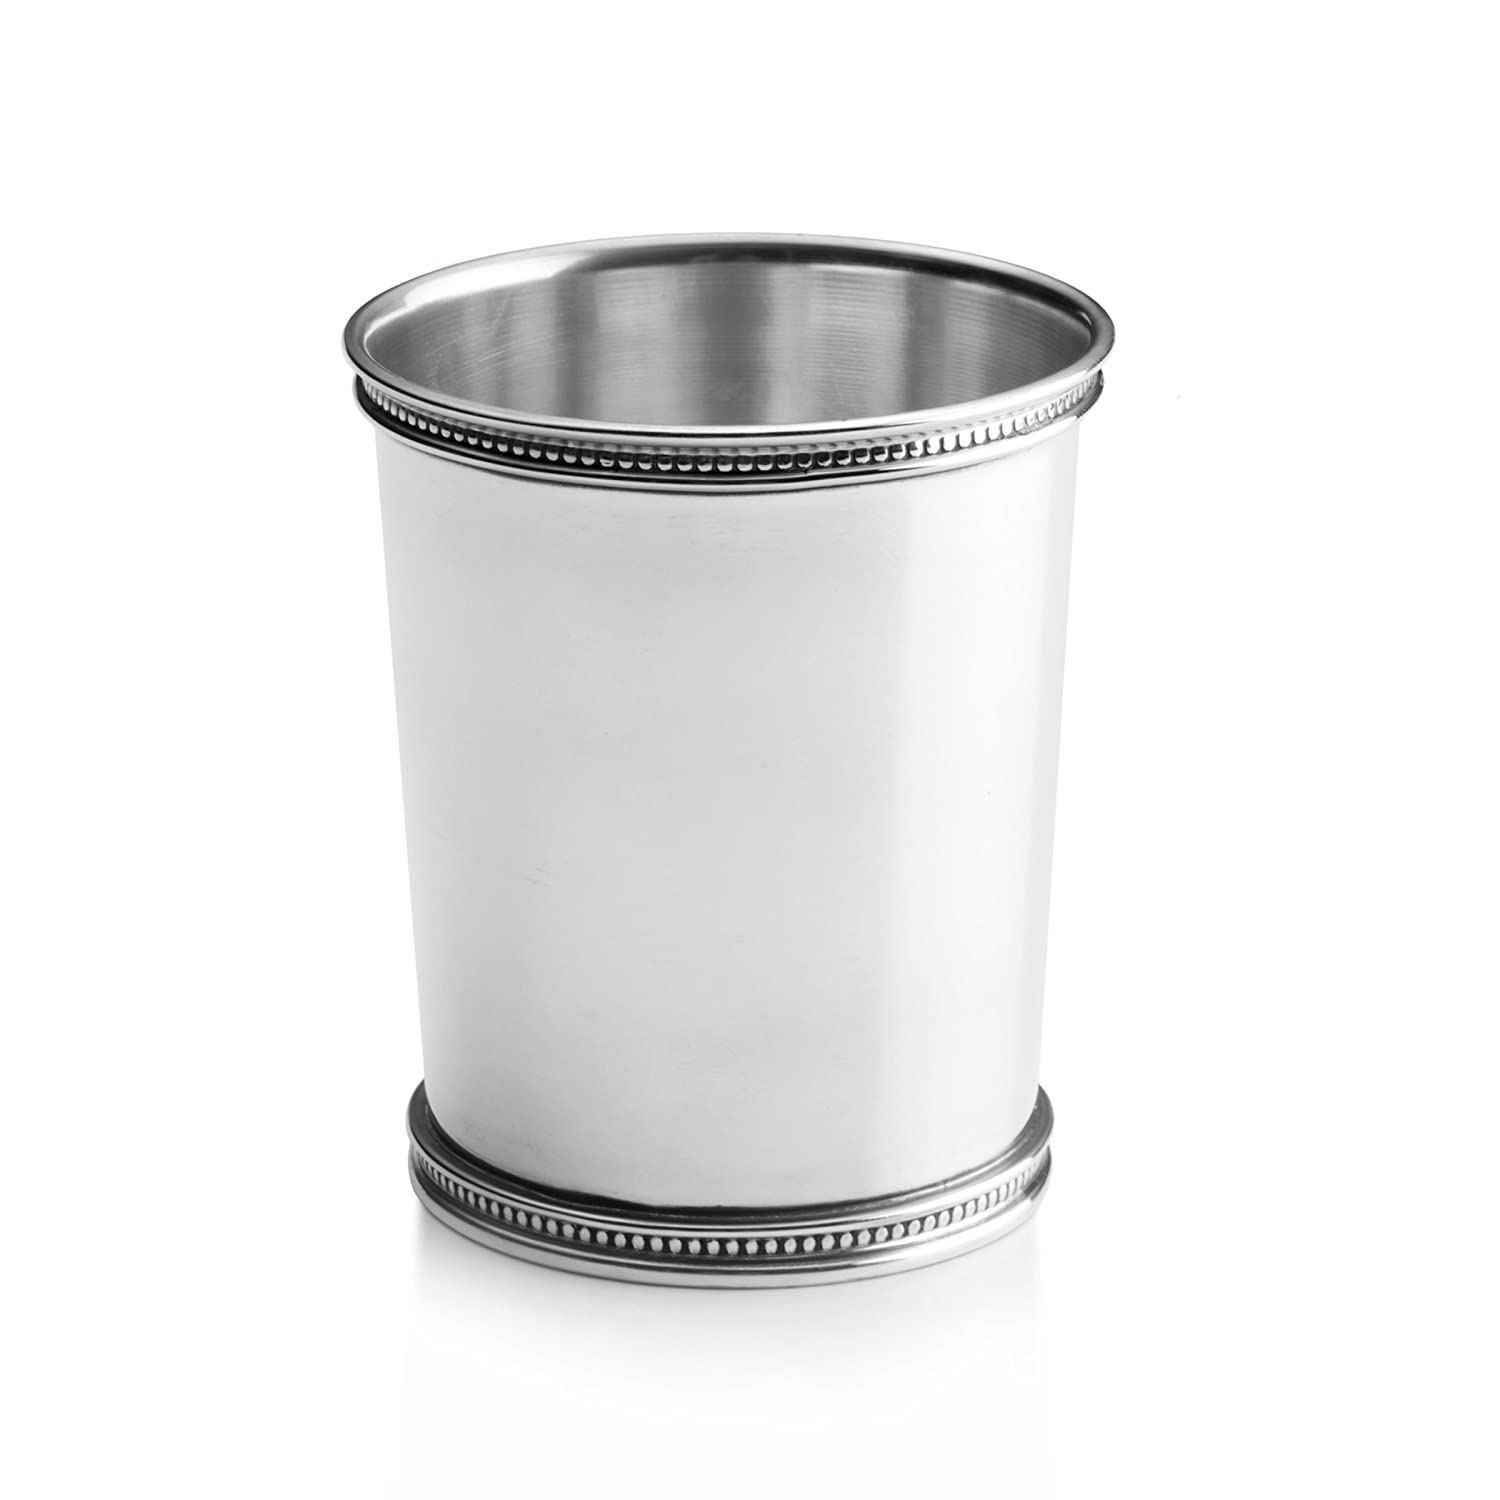 Towle Silver Plated Mint Julep Cup, 8-Ounce 5100387